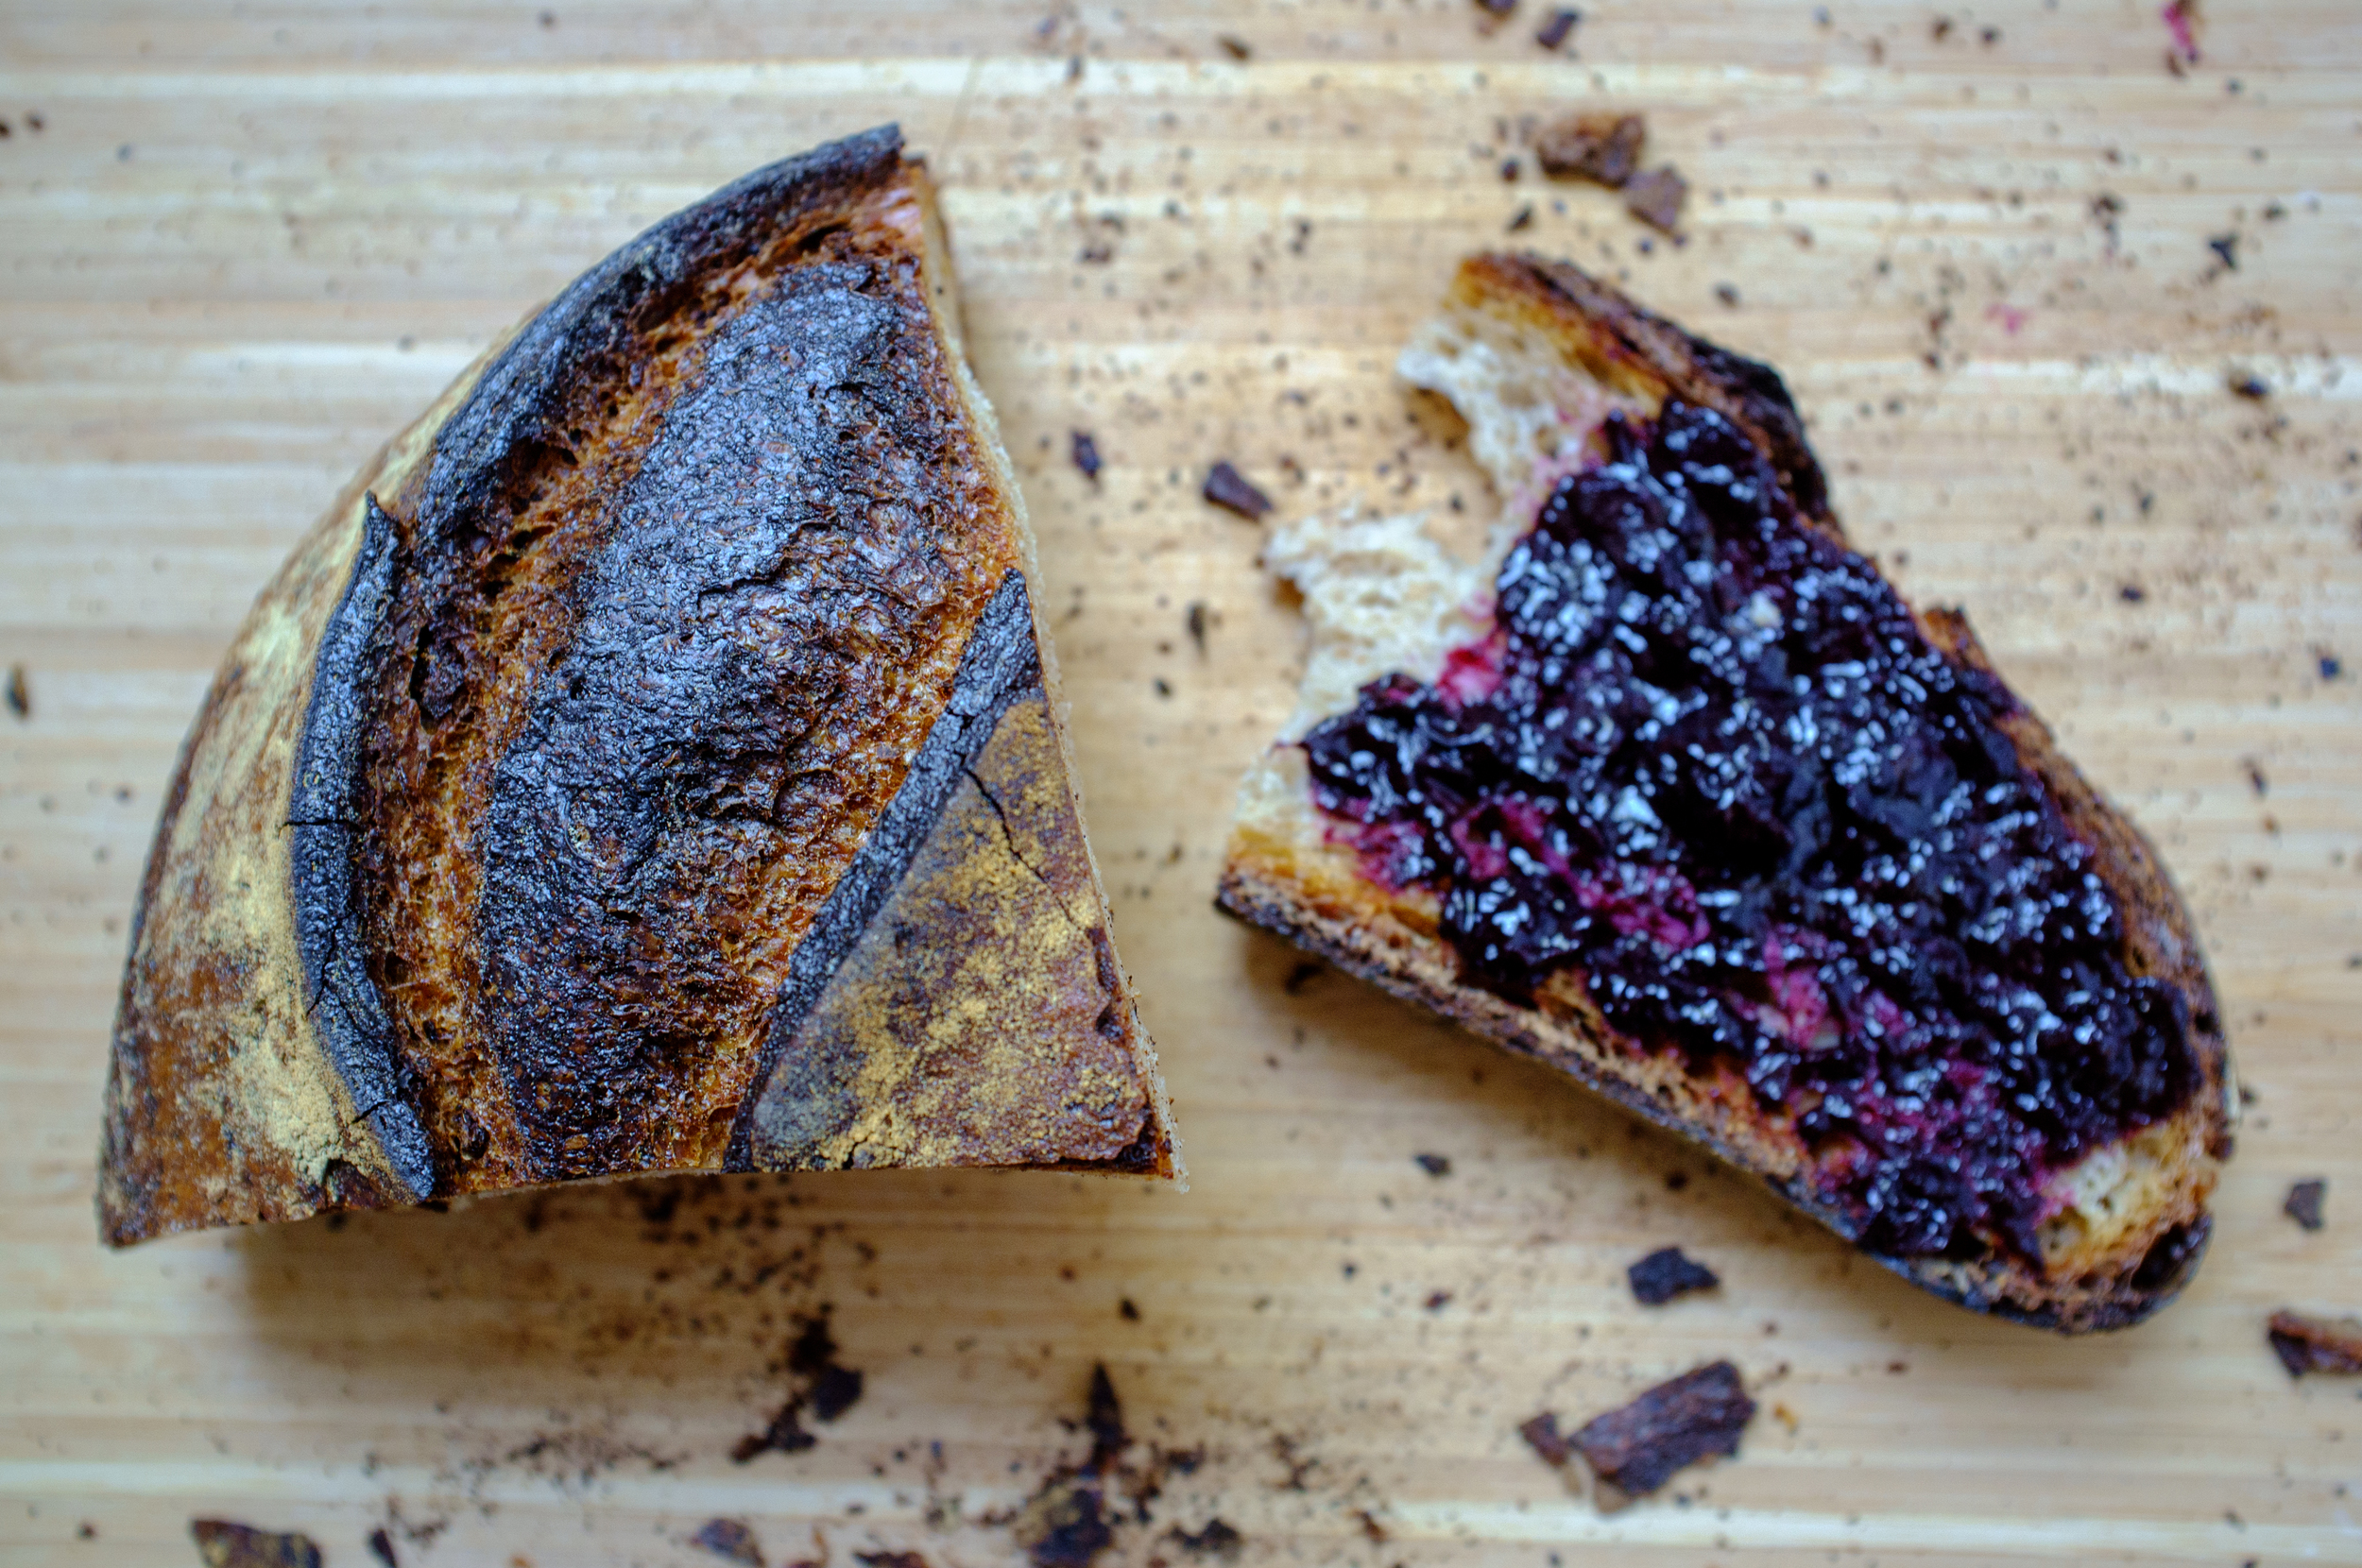 Neighborhood bakery Bien Cuit's MIche, a 68-hour fermented sourdough